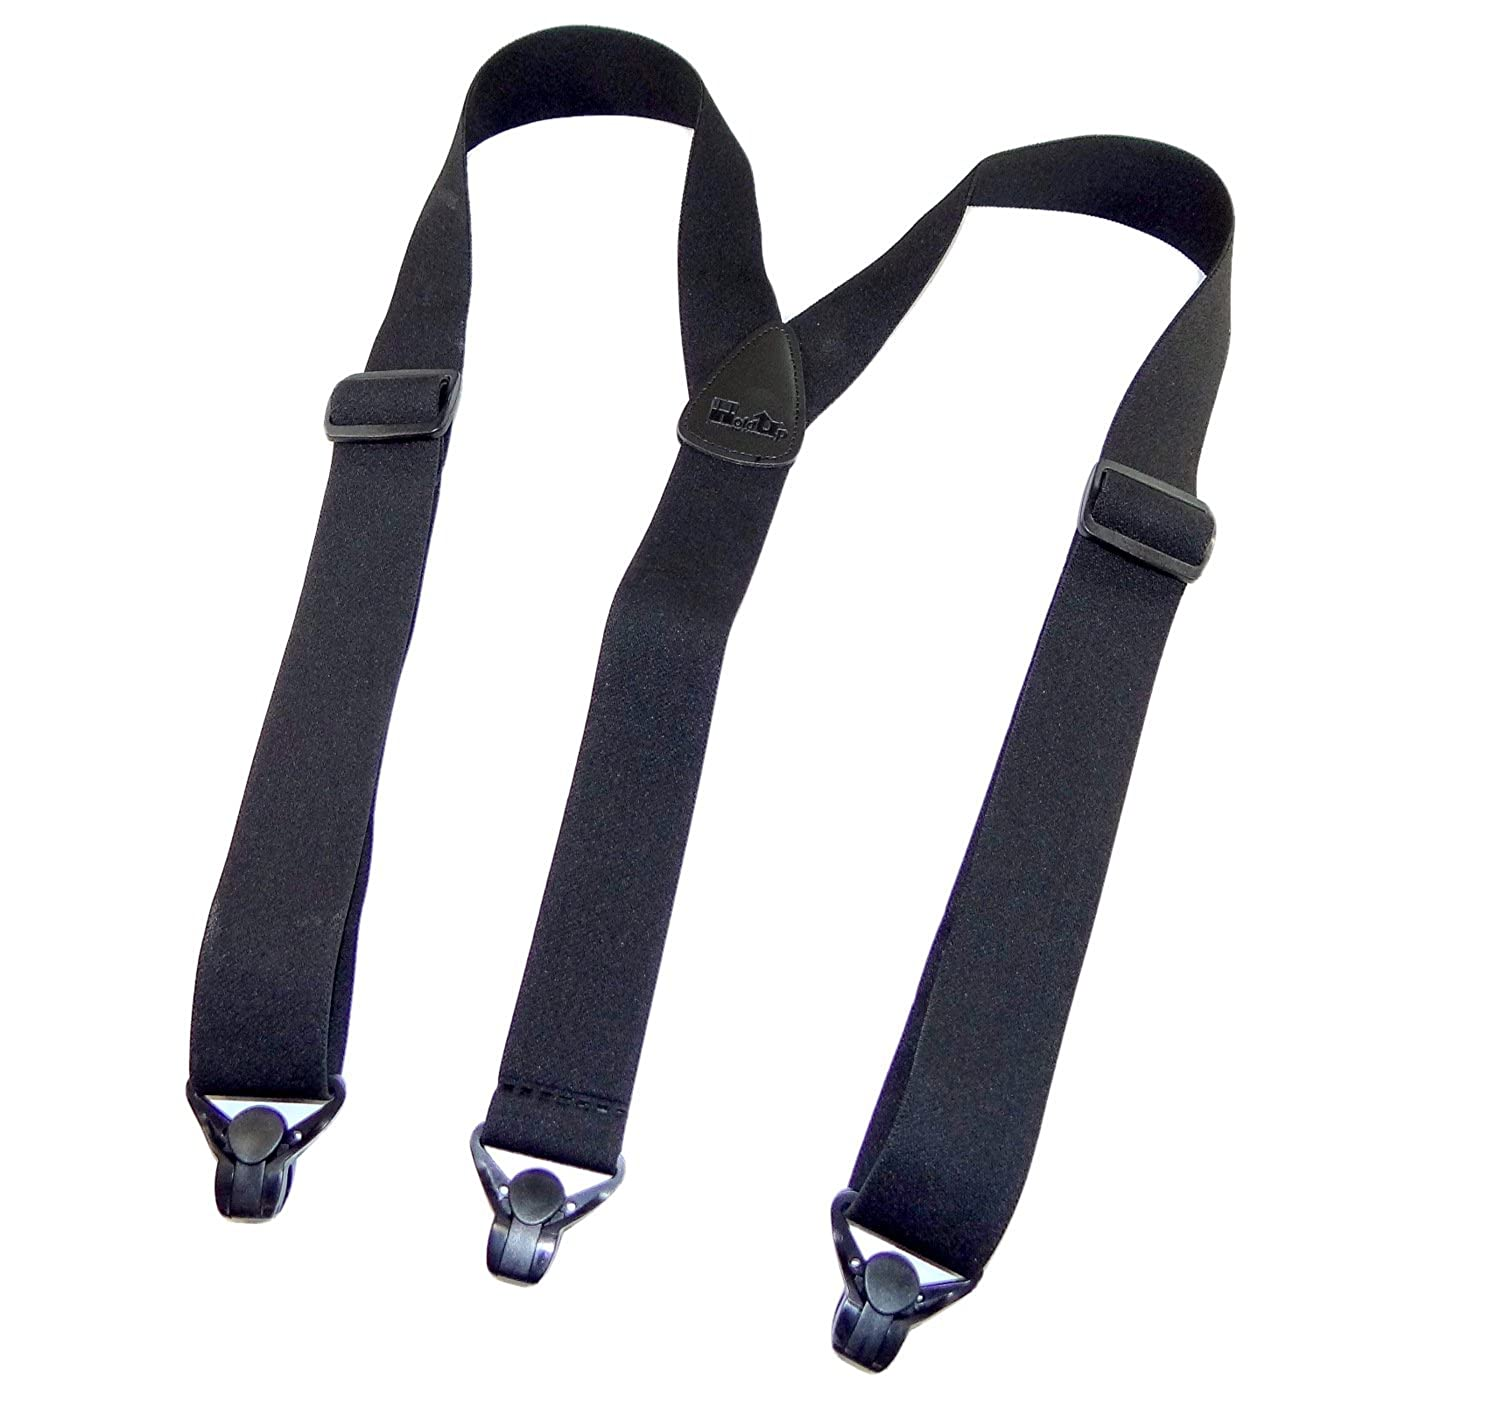 No-buzz Airport Friendly Black Suspenders Y-back Style with Patented Gripper Clasps Hold-Up Suspender Co. 7506YP